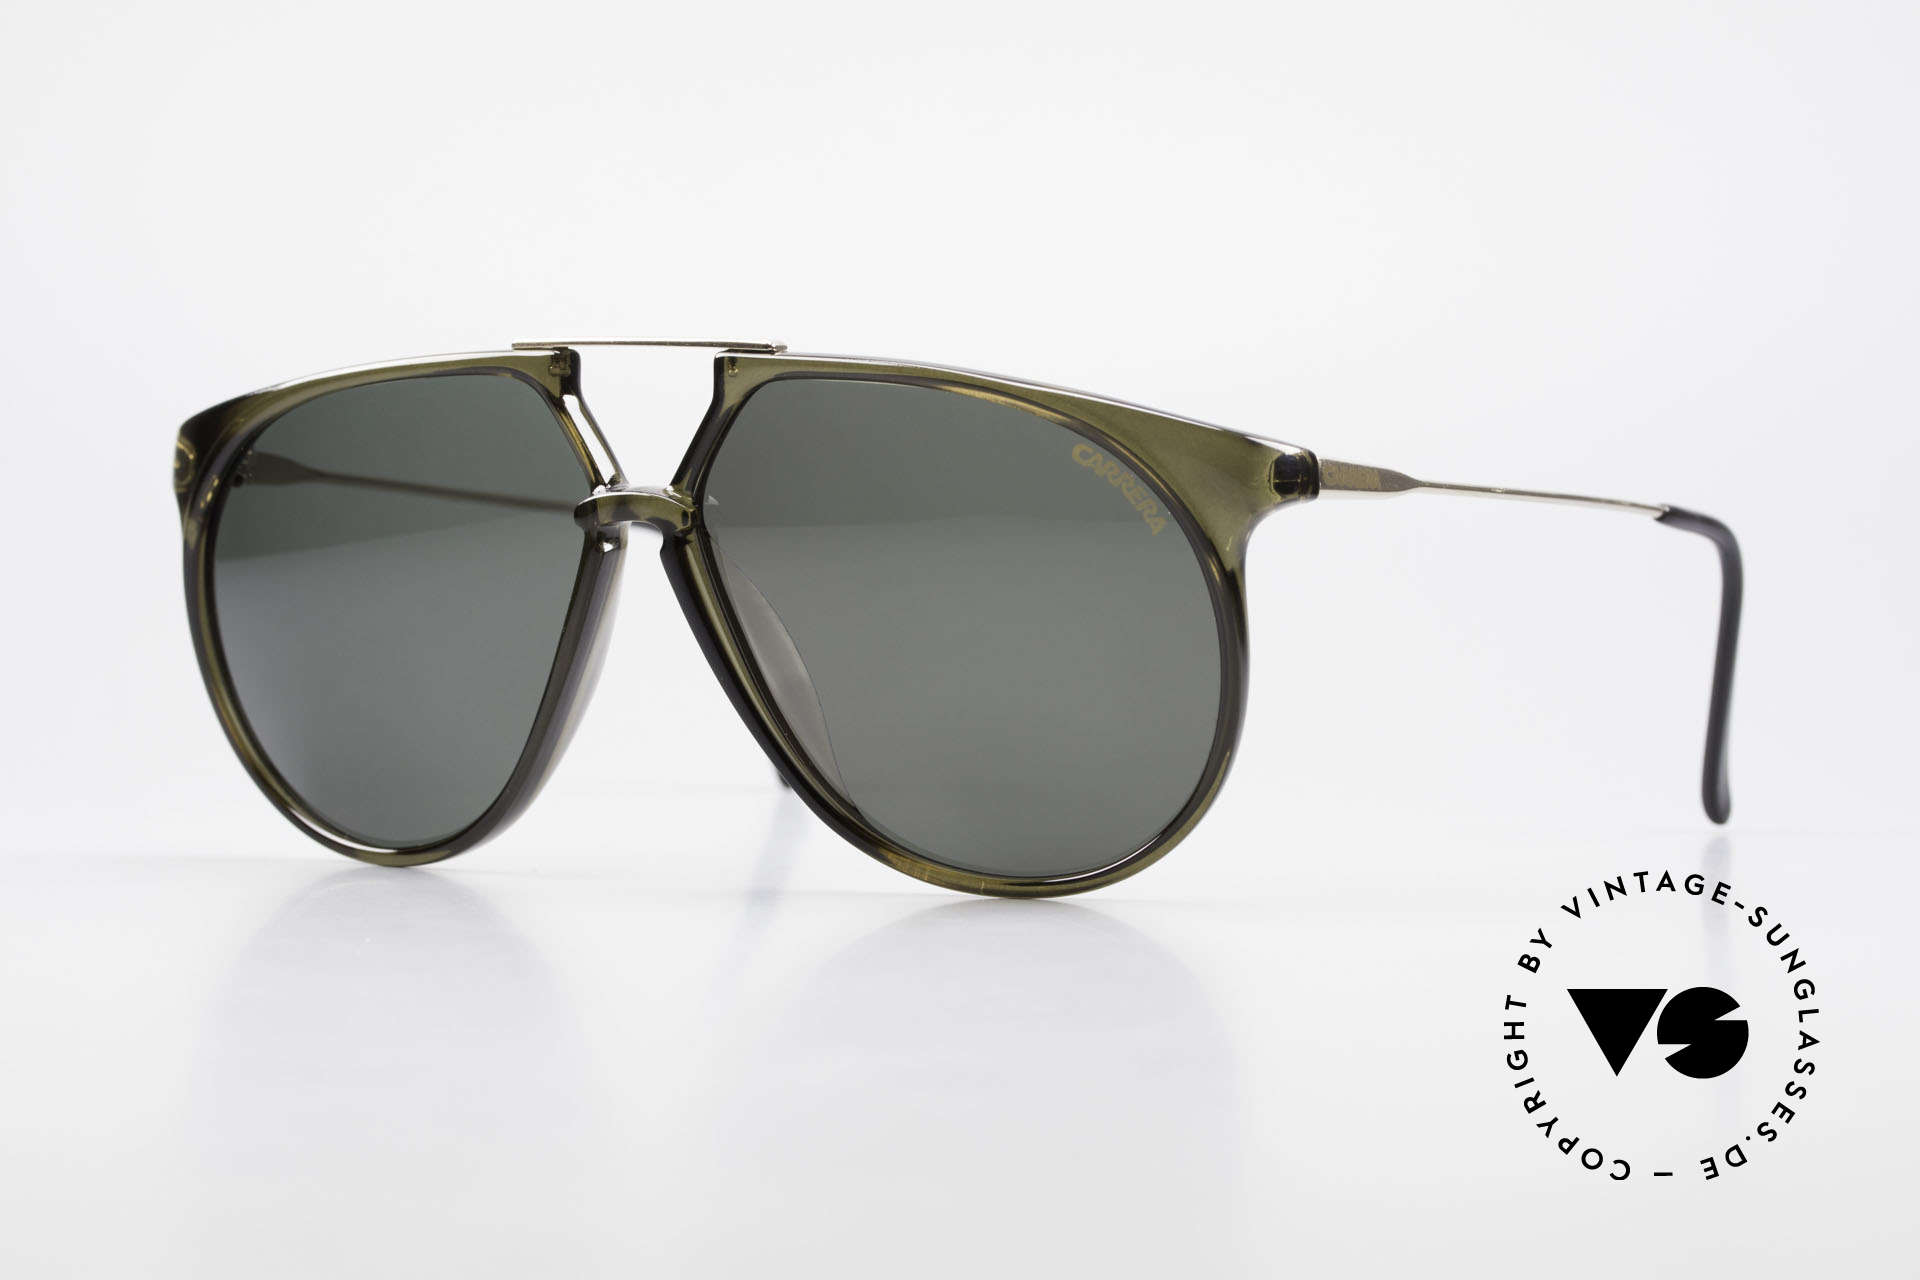 Carrera 5415 XL 80's Shades 2 Sets Of Lenses, vintage Carrera designer sunglasses from the 1980's, Made for Men